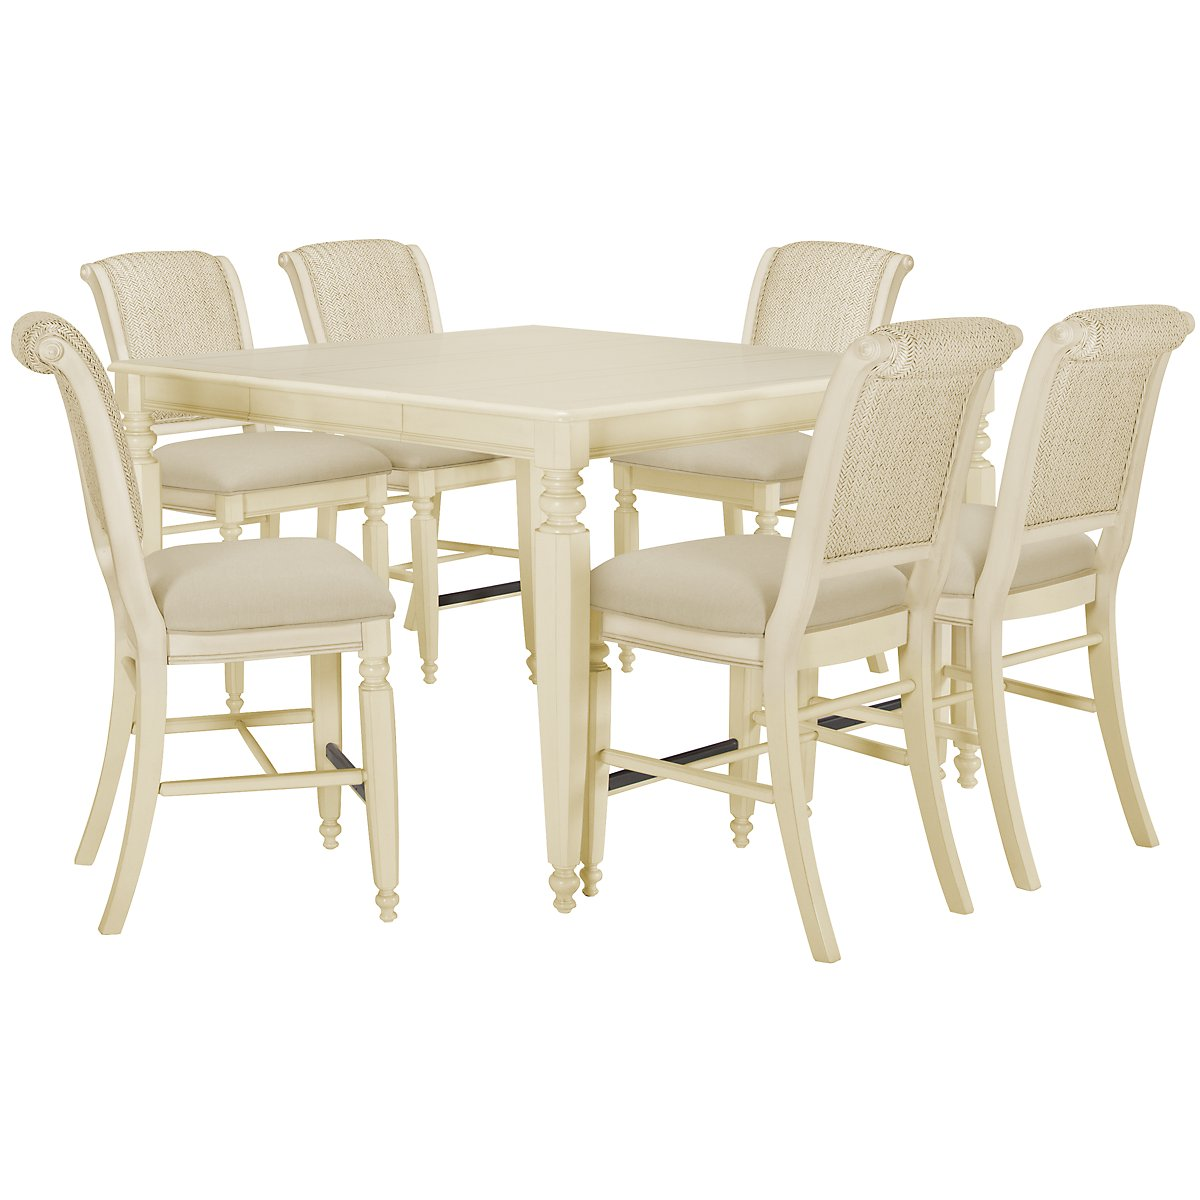 Claire White High Table & 4 Woven Barstools